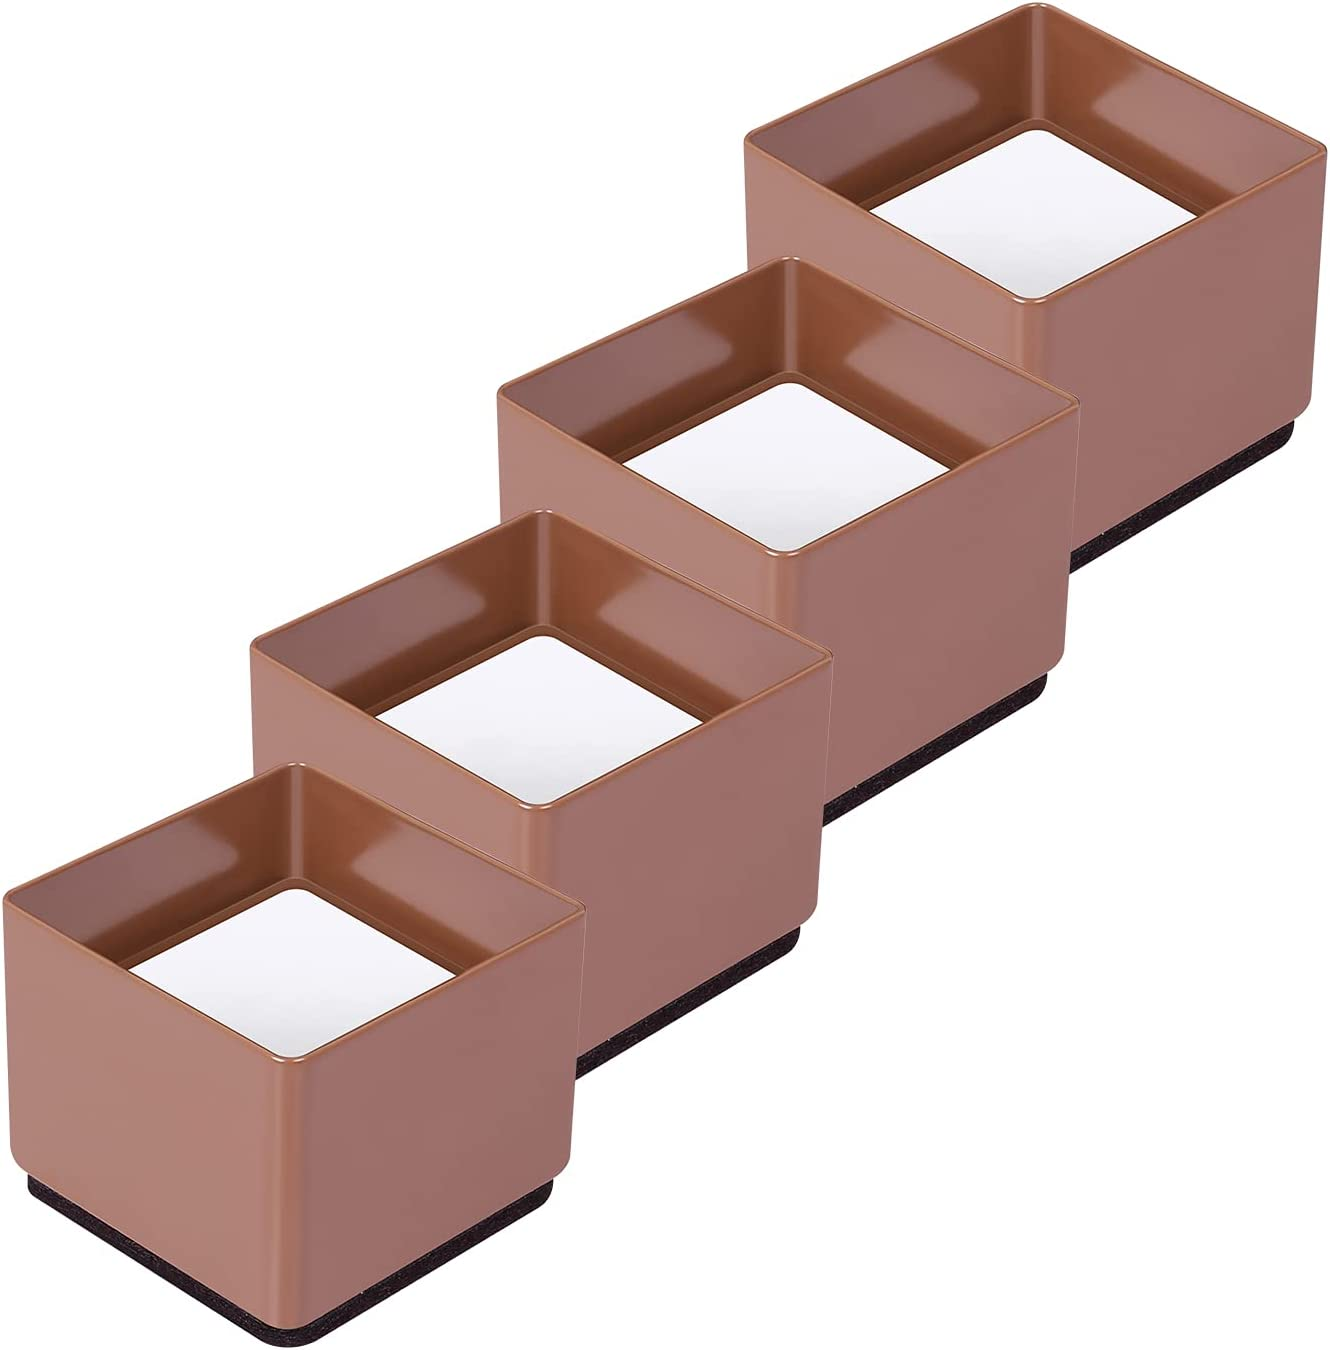 Ezprotekt Upgrade Bed Risers Heavy Duty Furniture Risers for Sofa Table Couch Lift Height of 1.2 Inches, Bottom Pad Protect Floors, Solid Steel Offer Strong Support, Set of 4, Square Brown